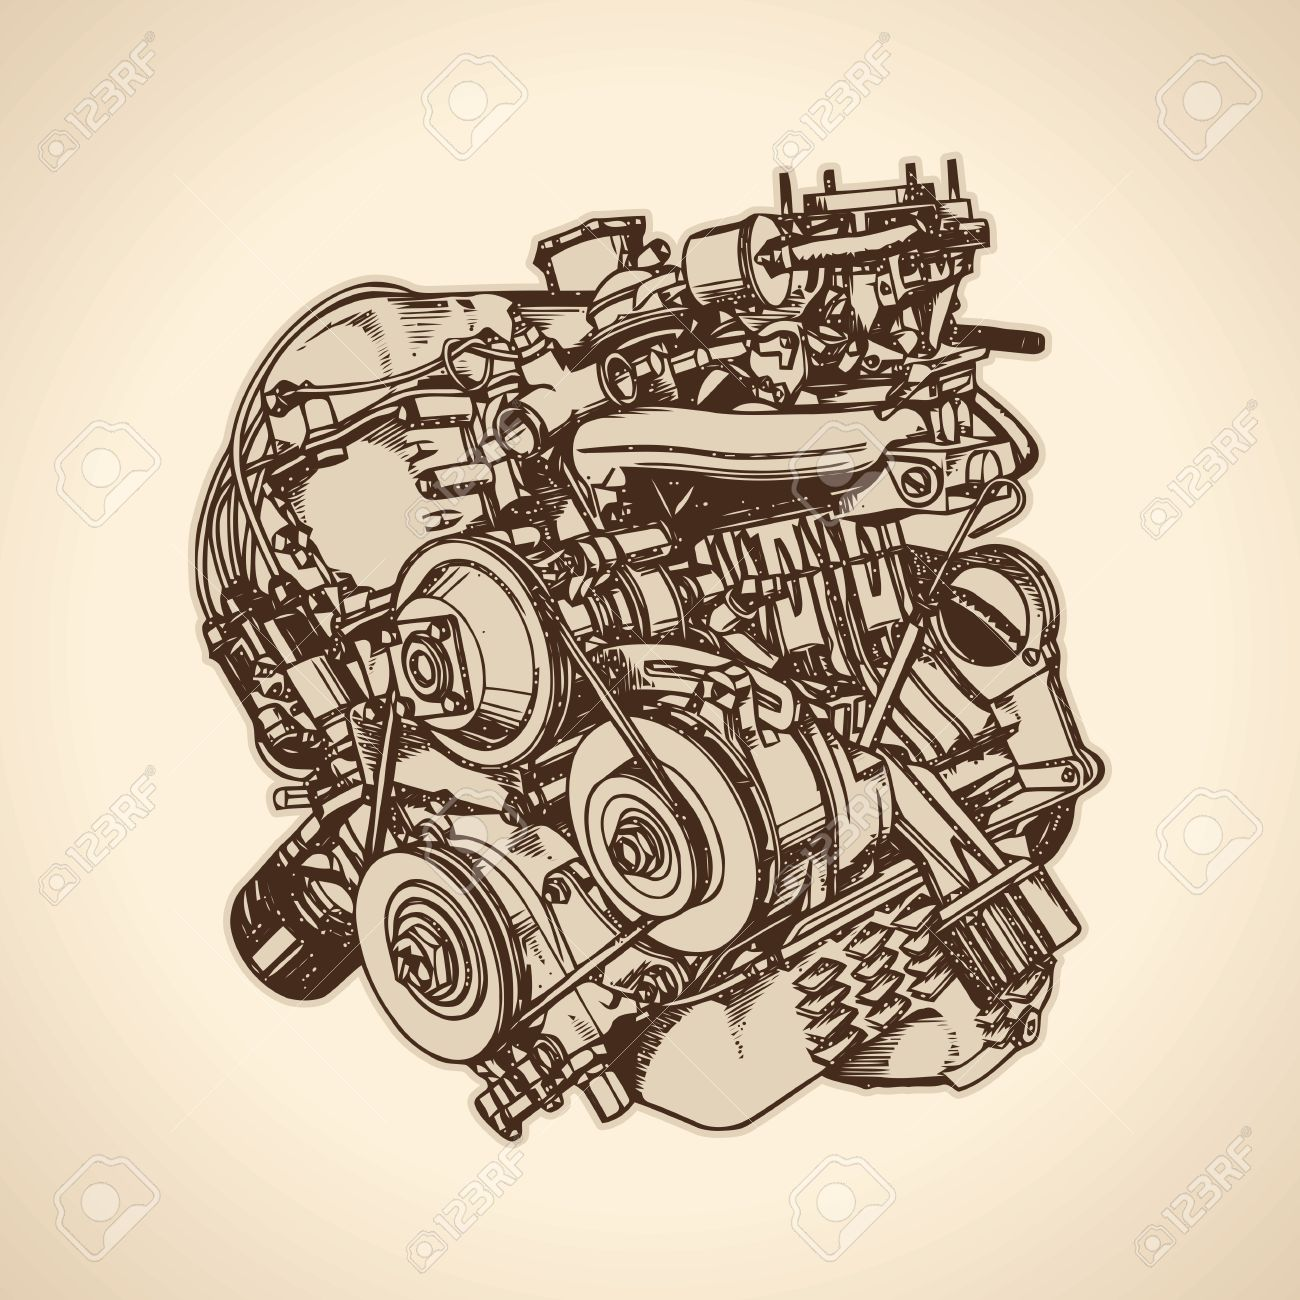 1300x1300 Old Internal Combustion Engine, Drawing. Vector Royalty Free